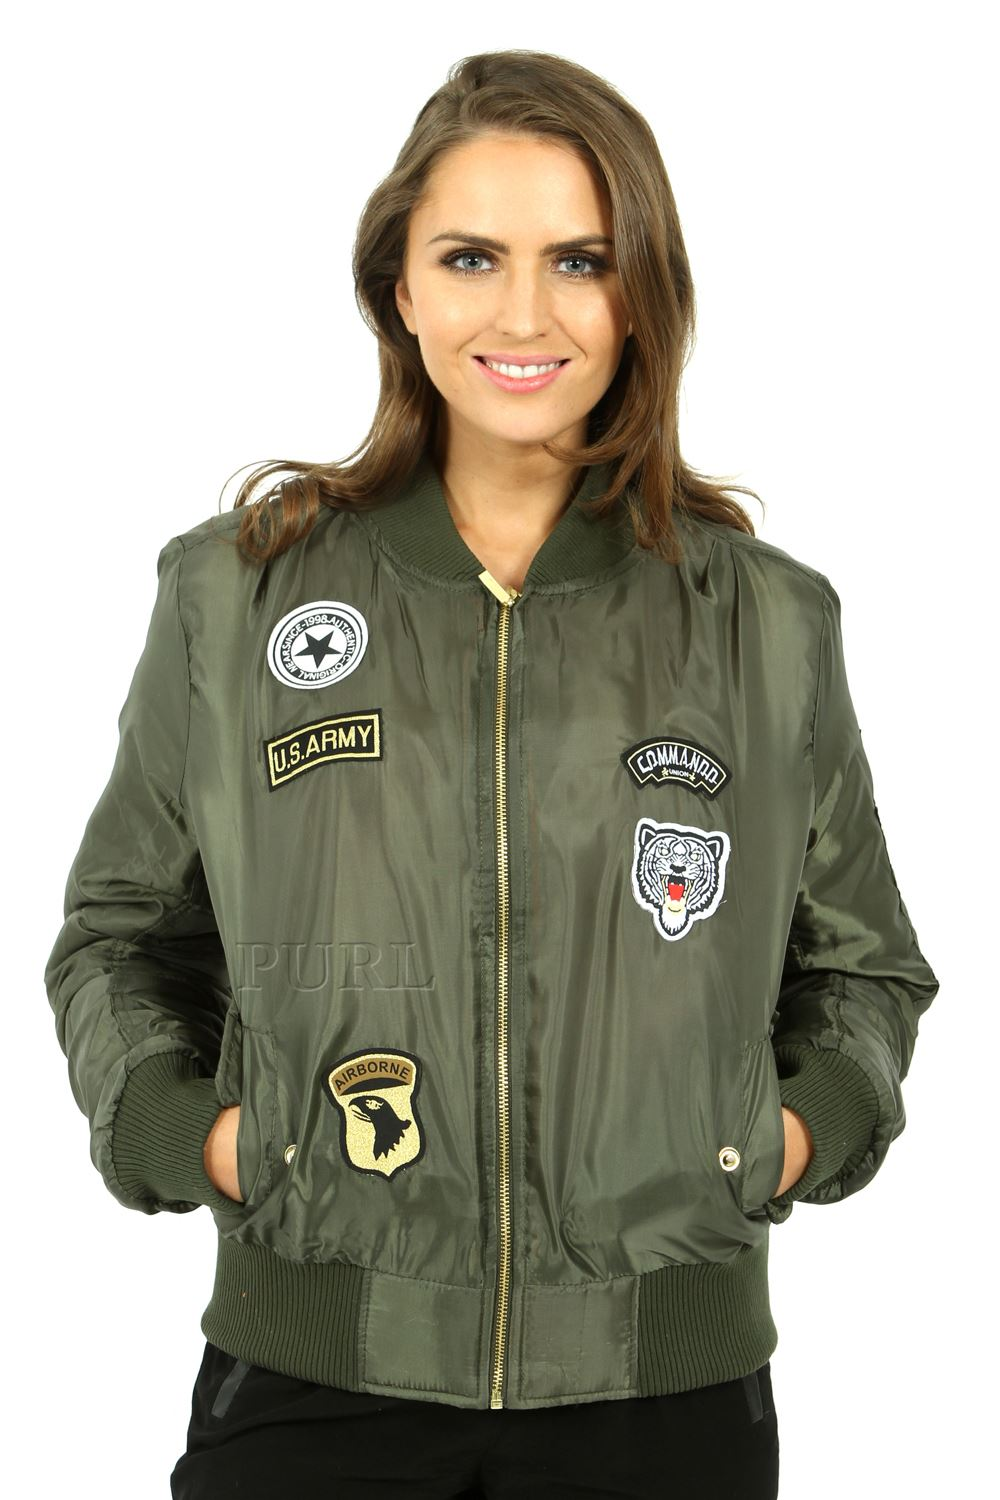 Find womens bomber jackets uk at ShopStyle. Shop the latest collection of womens bomber jackets uk from the most popular stores - all in one place.